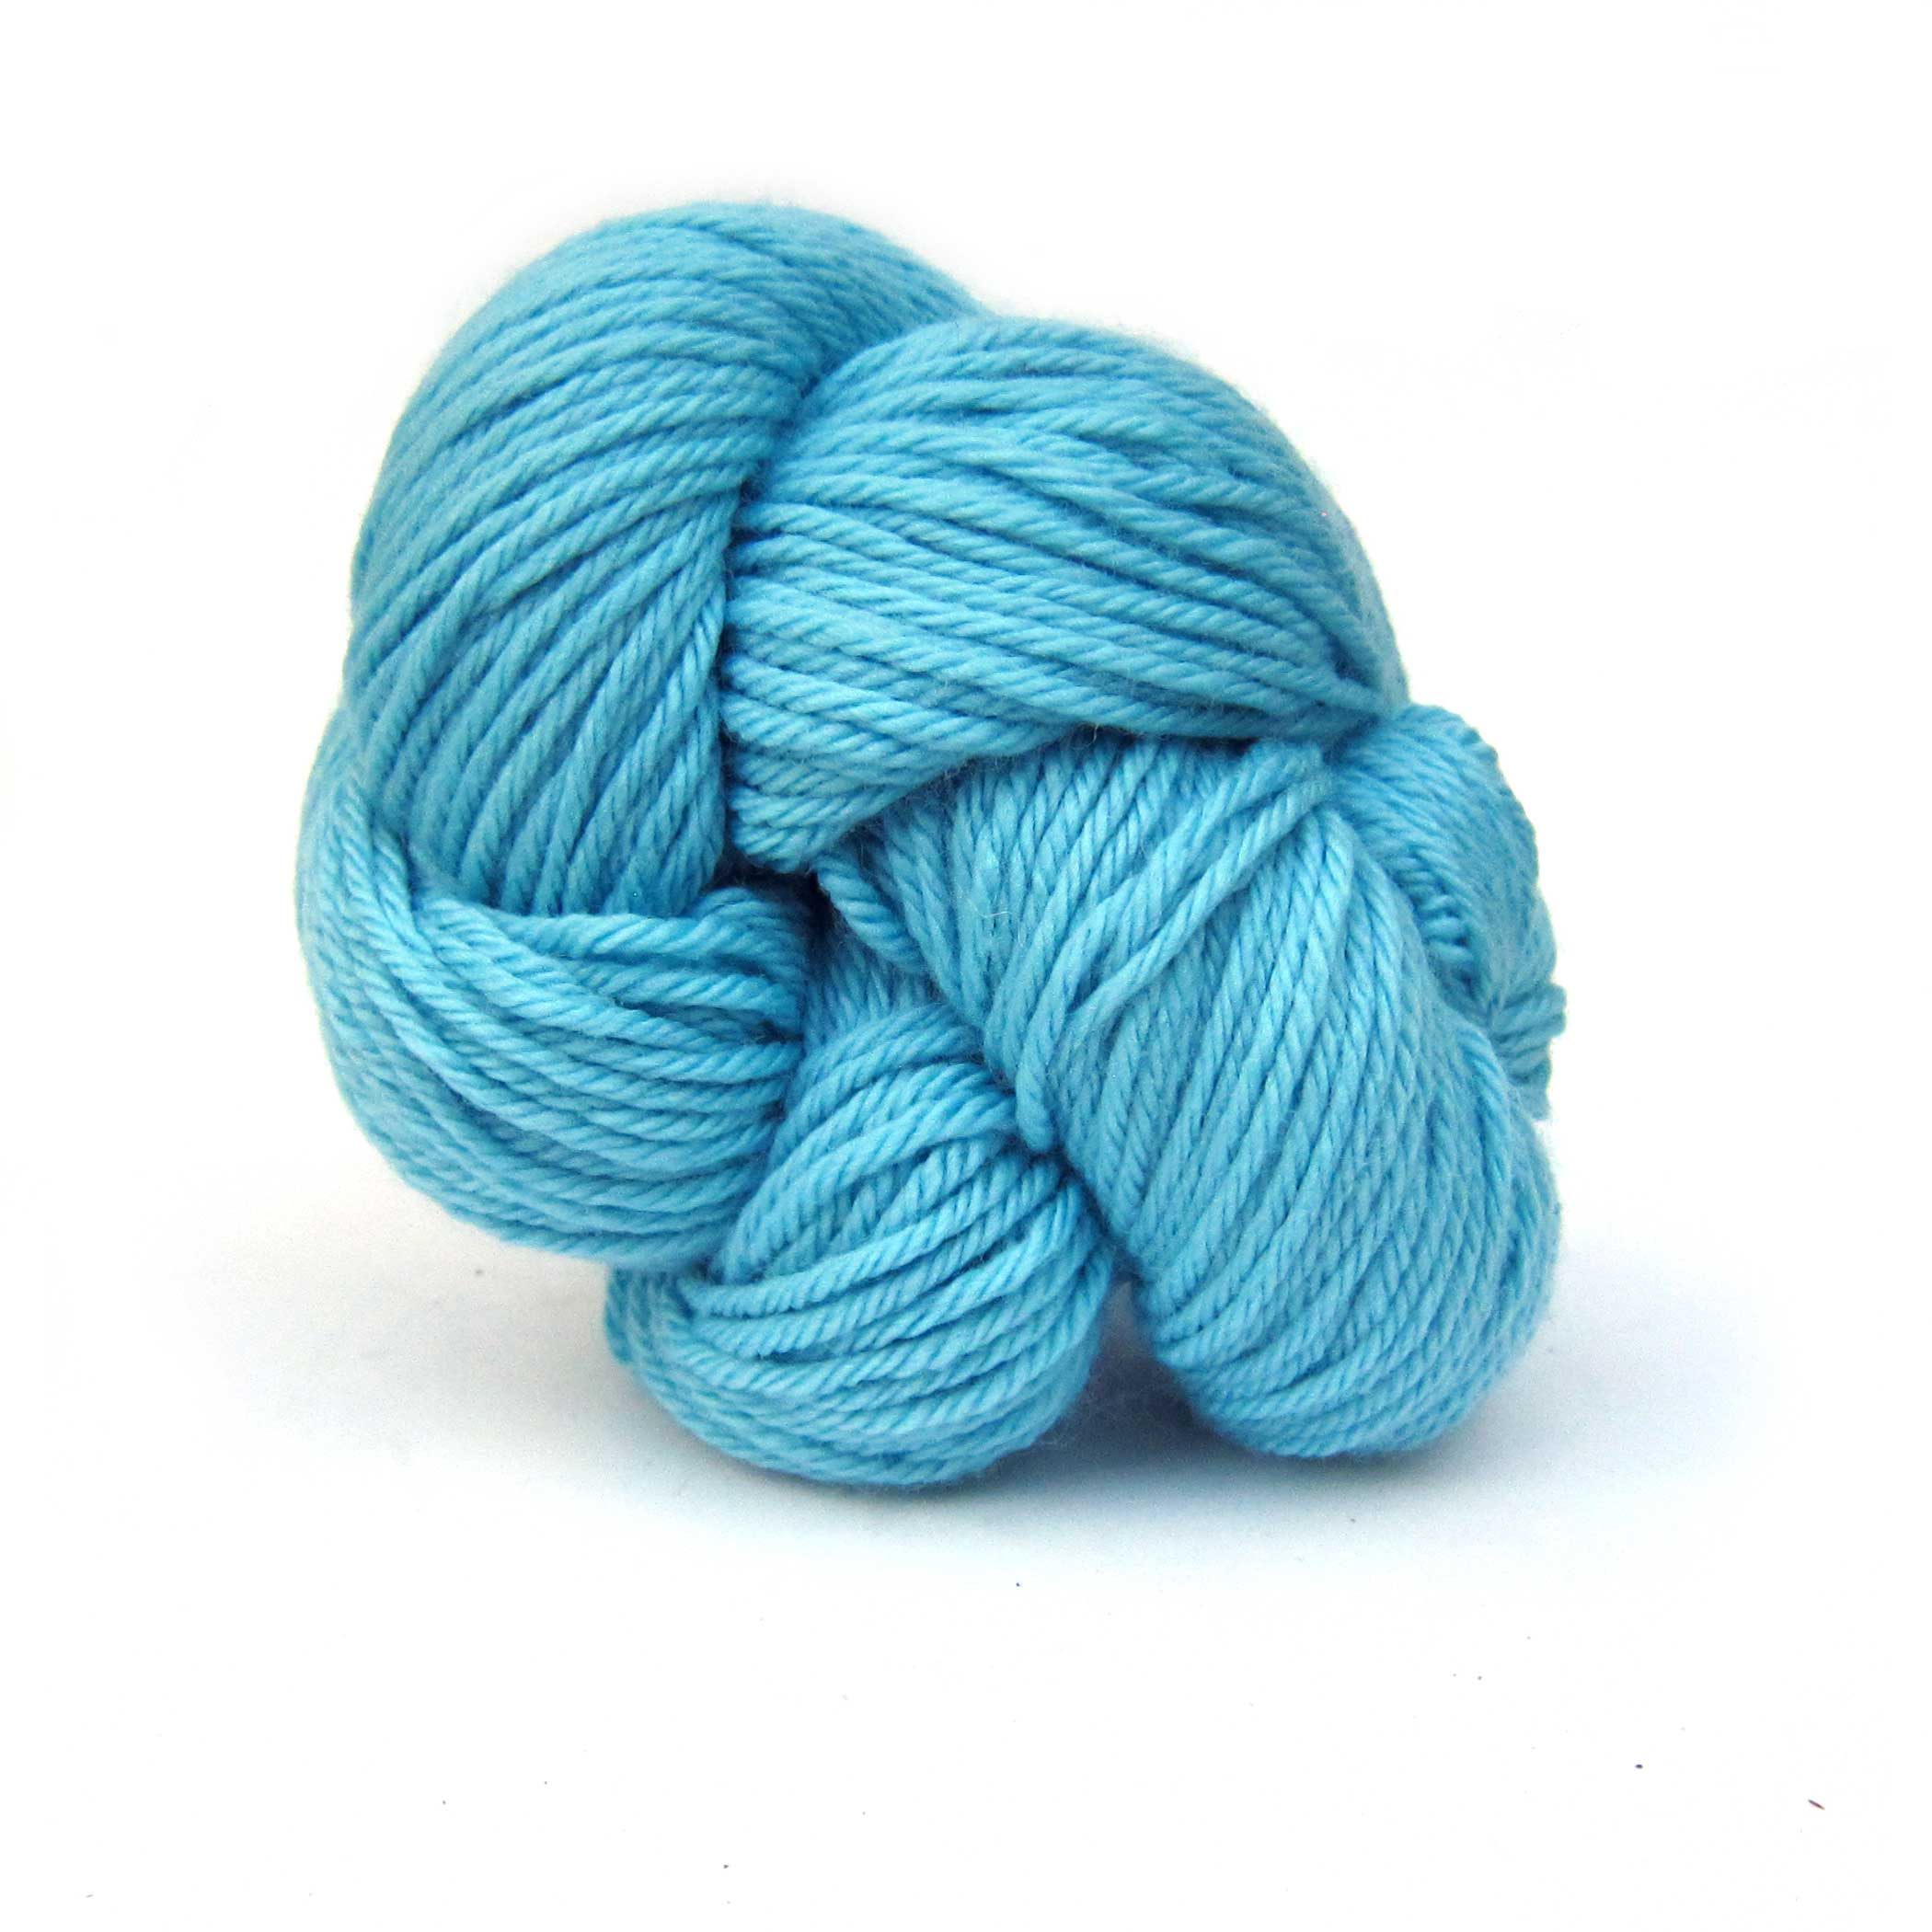 Aqua Louet Gems 100% Merino Superwash Yarn